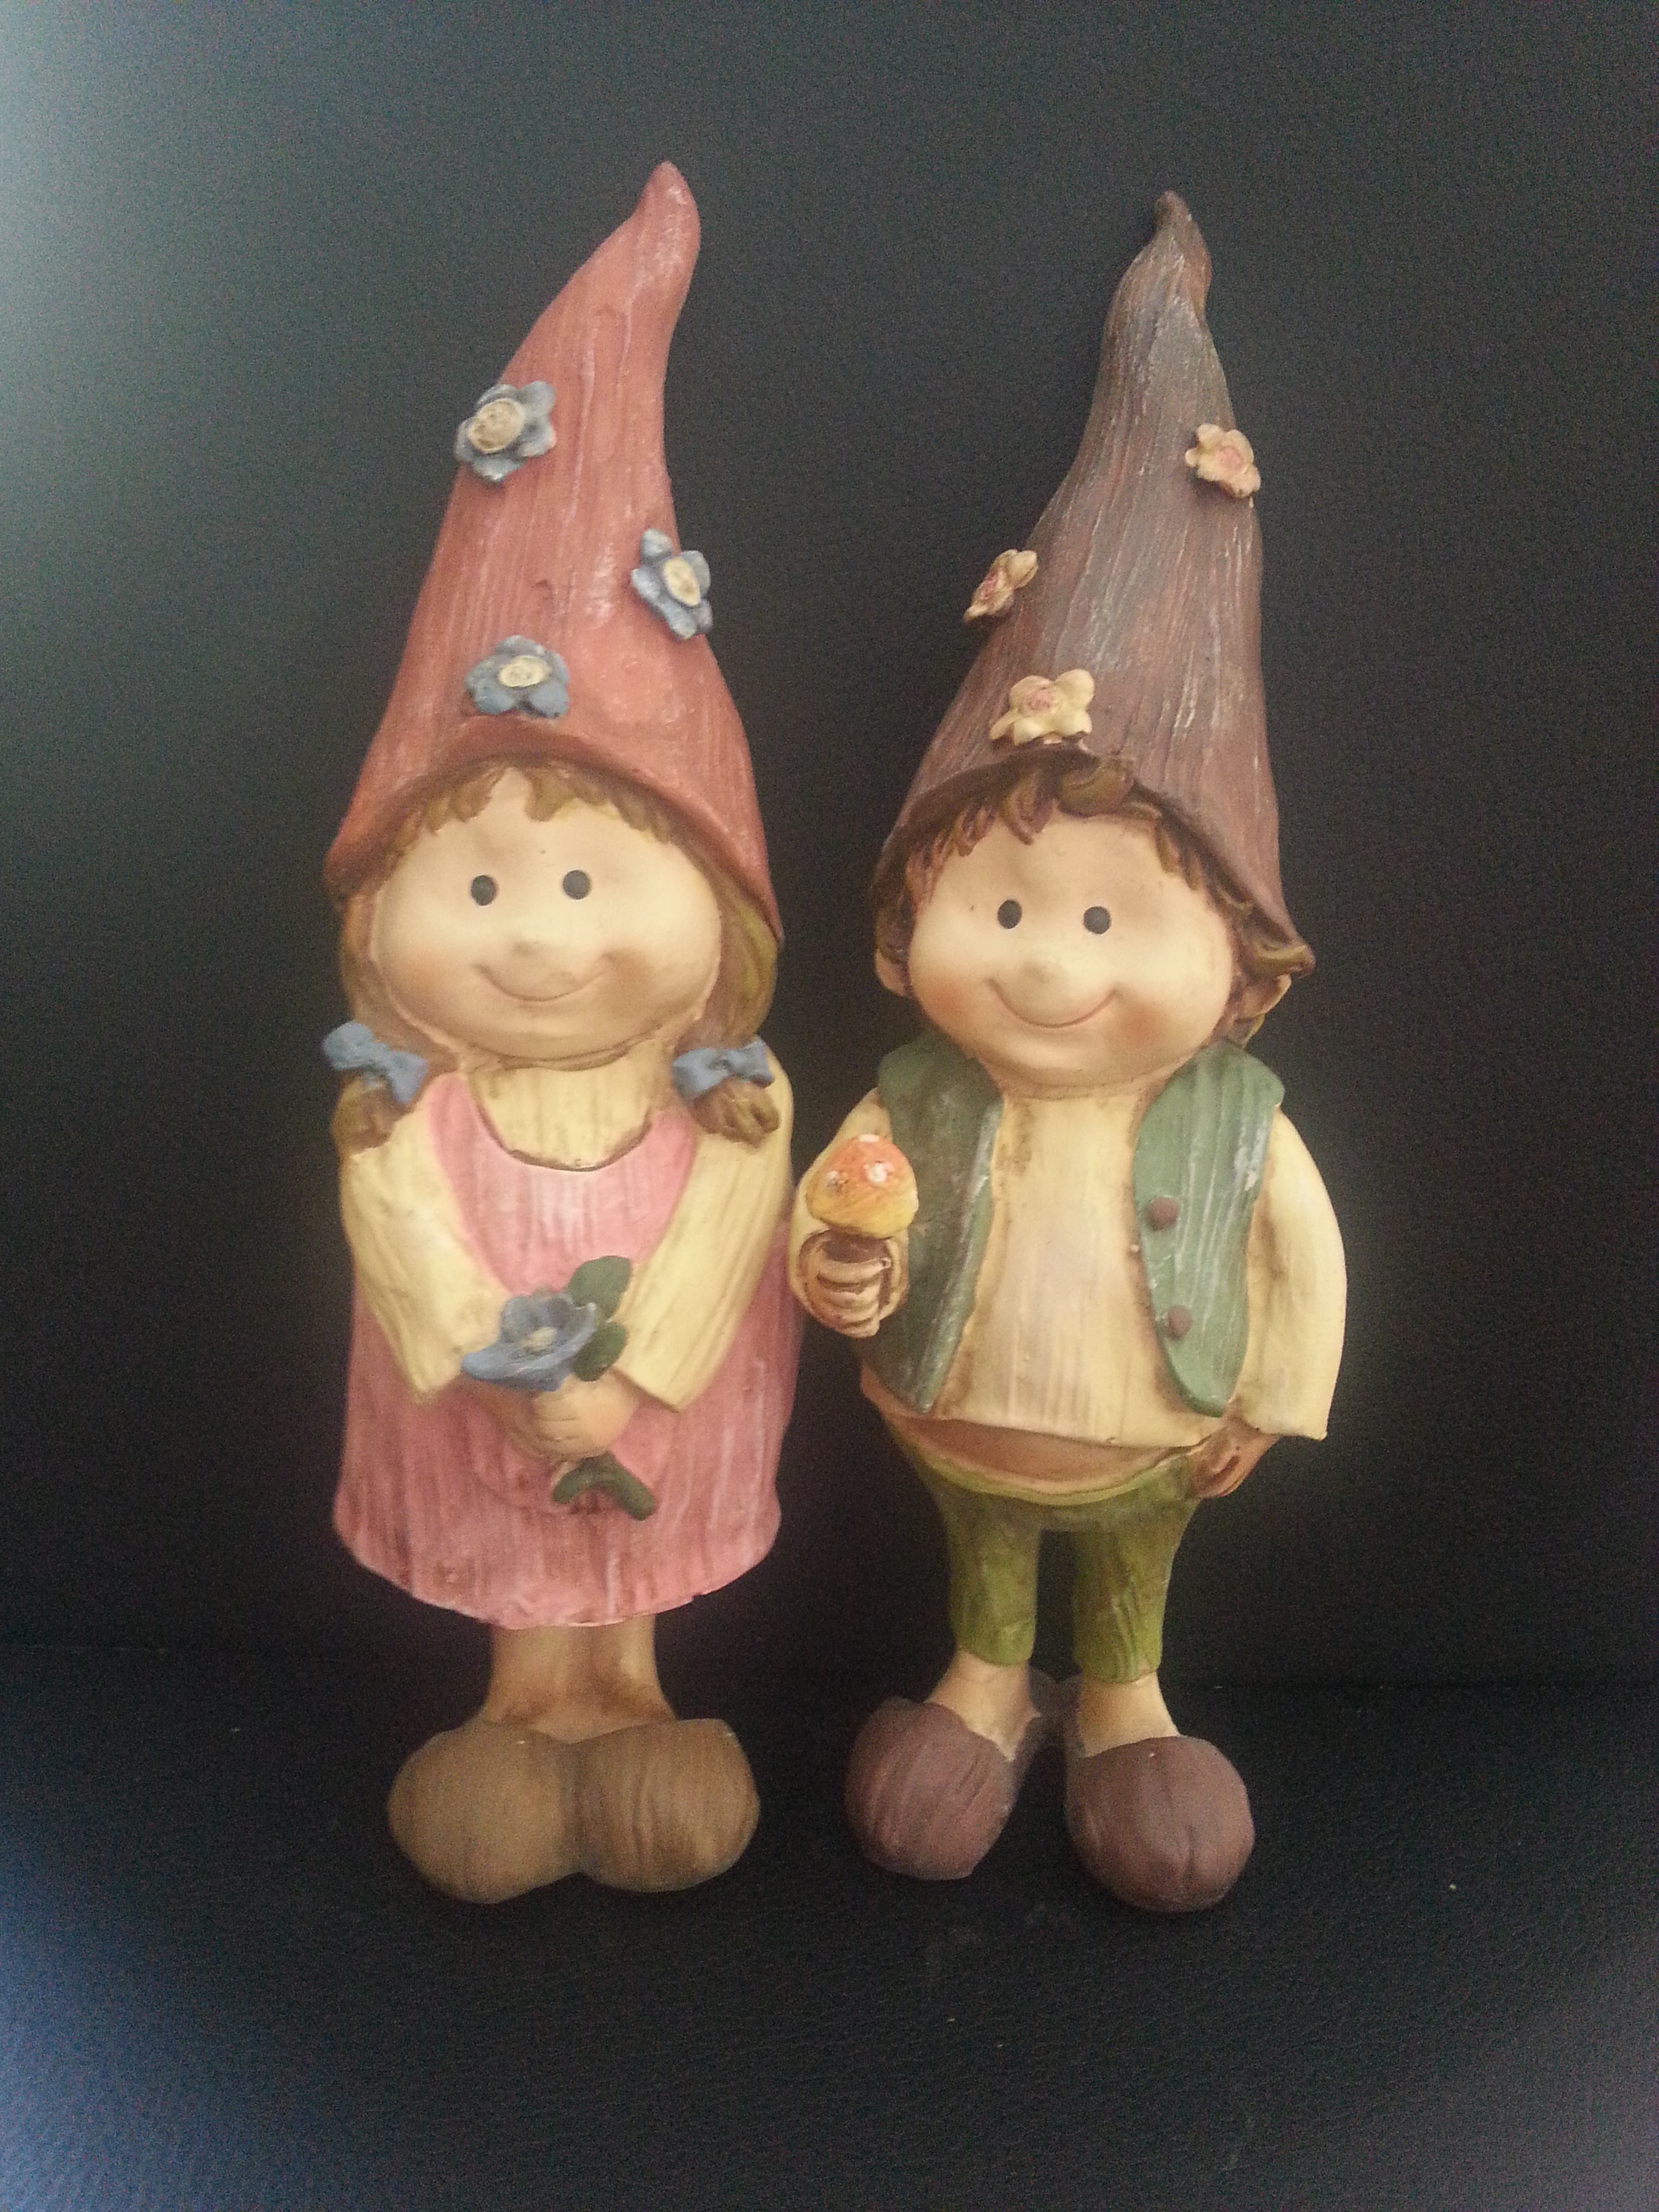 gnome kids, gnomes, winnipeg garden centers, jensen nursery and garden center